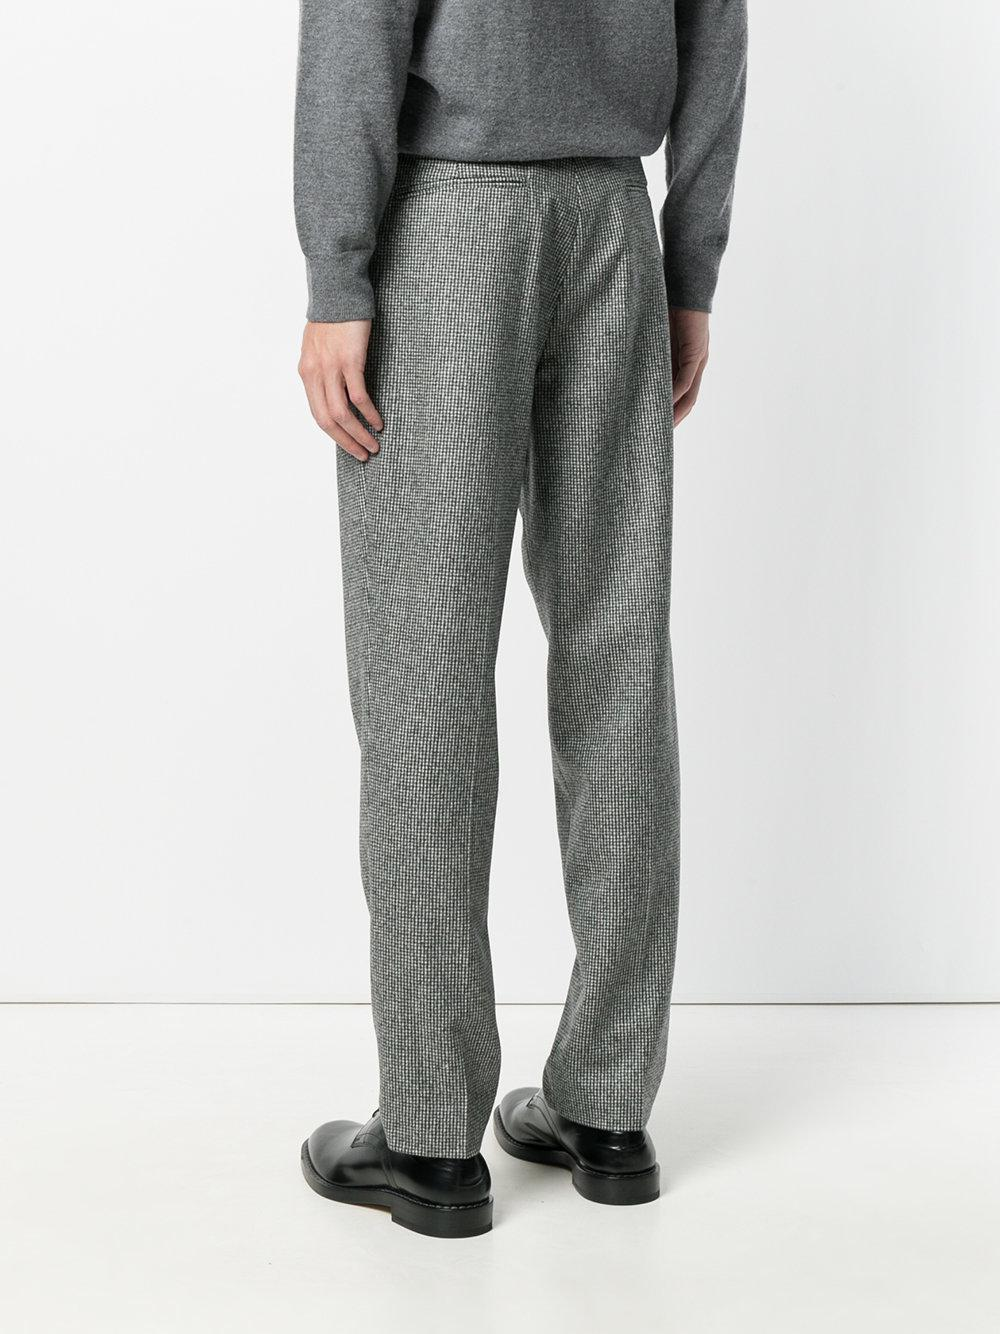 Harmony Wool Houndstooth Print Slim-fit Trousers in Grey (Grey) for Men